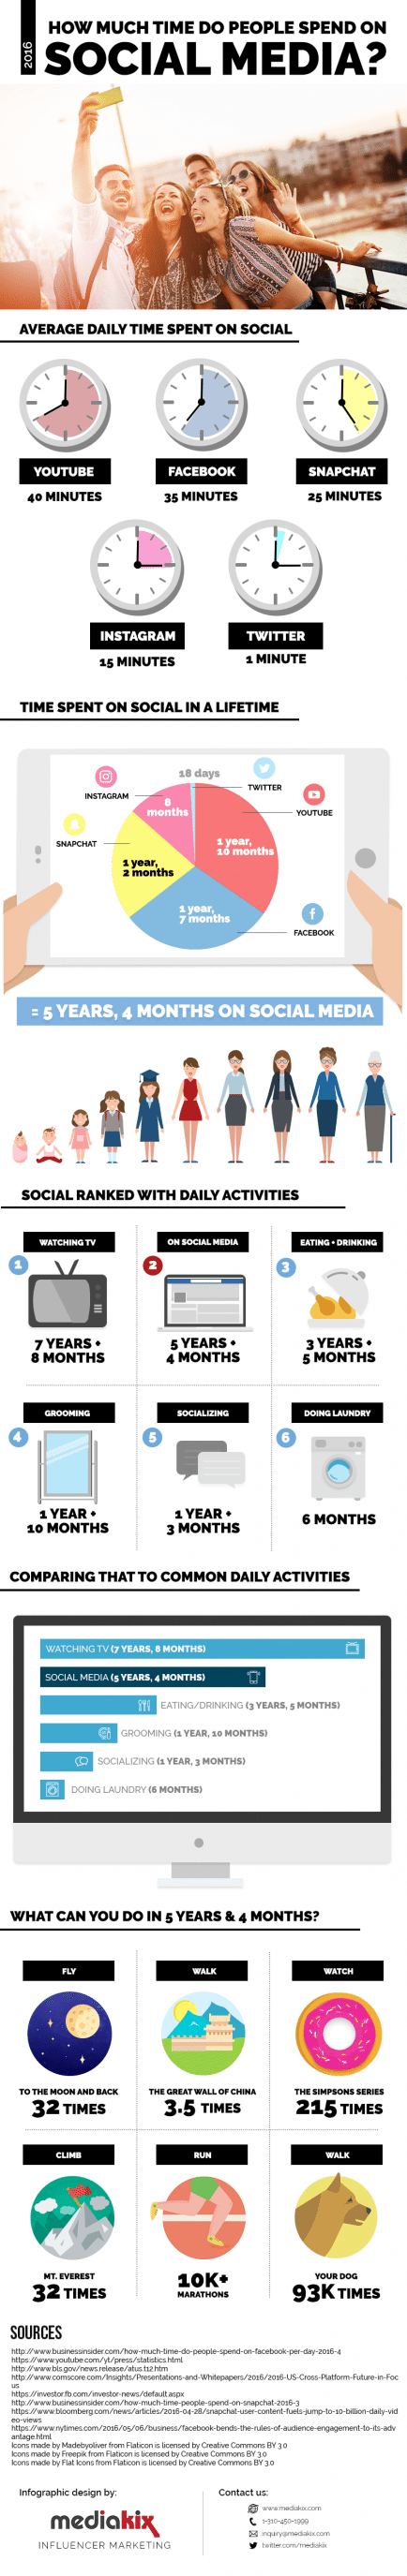 how much time is spent on social media infographic